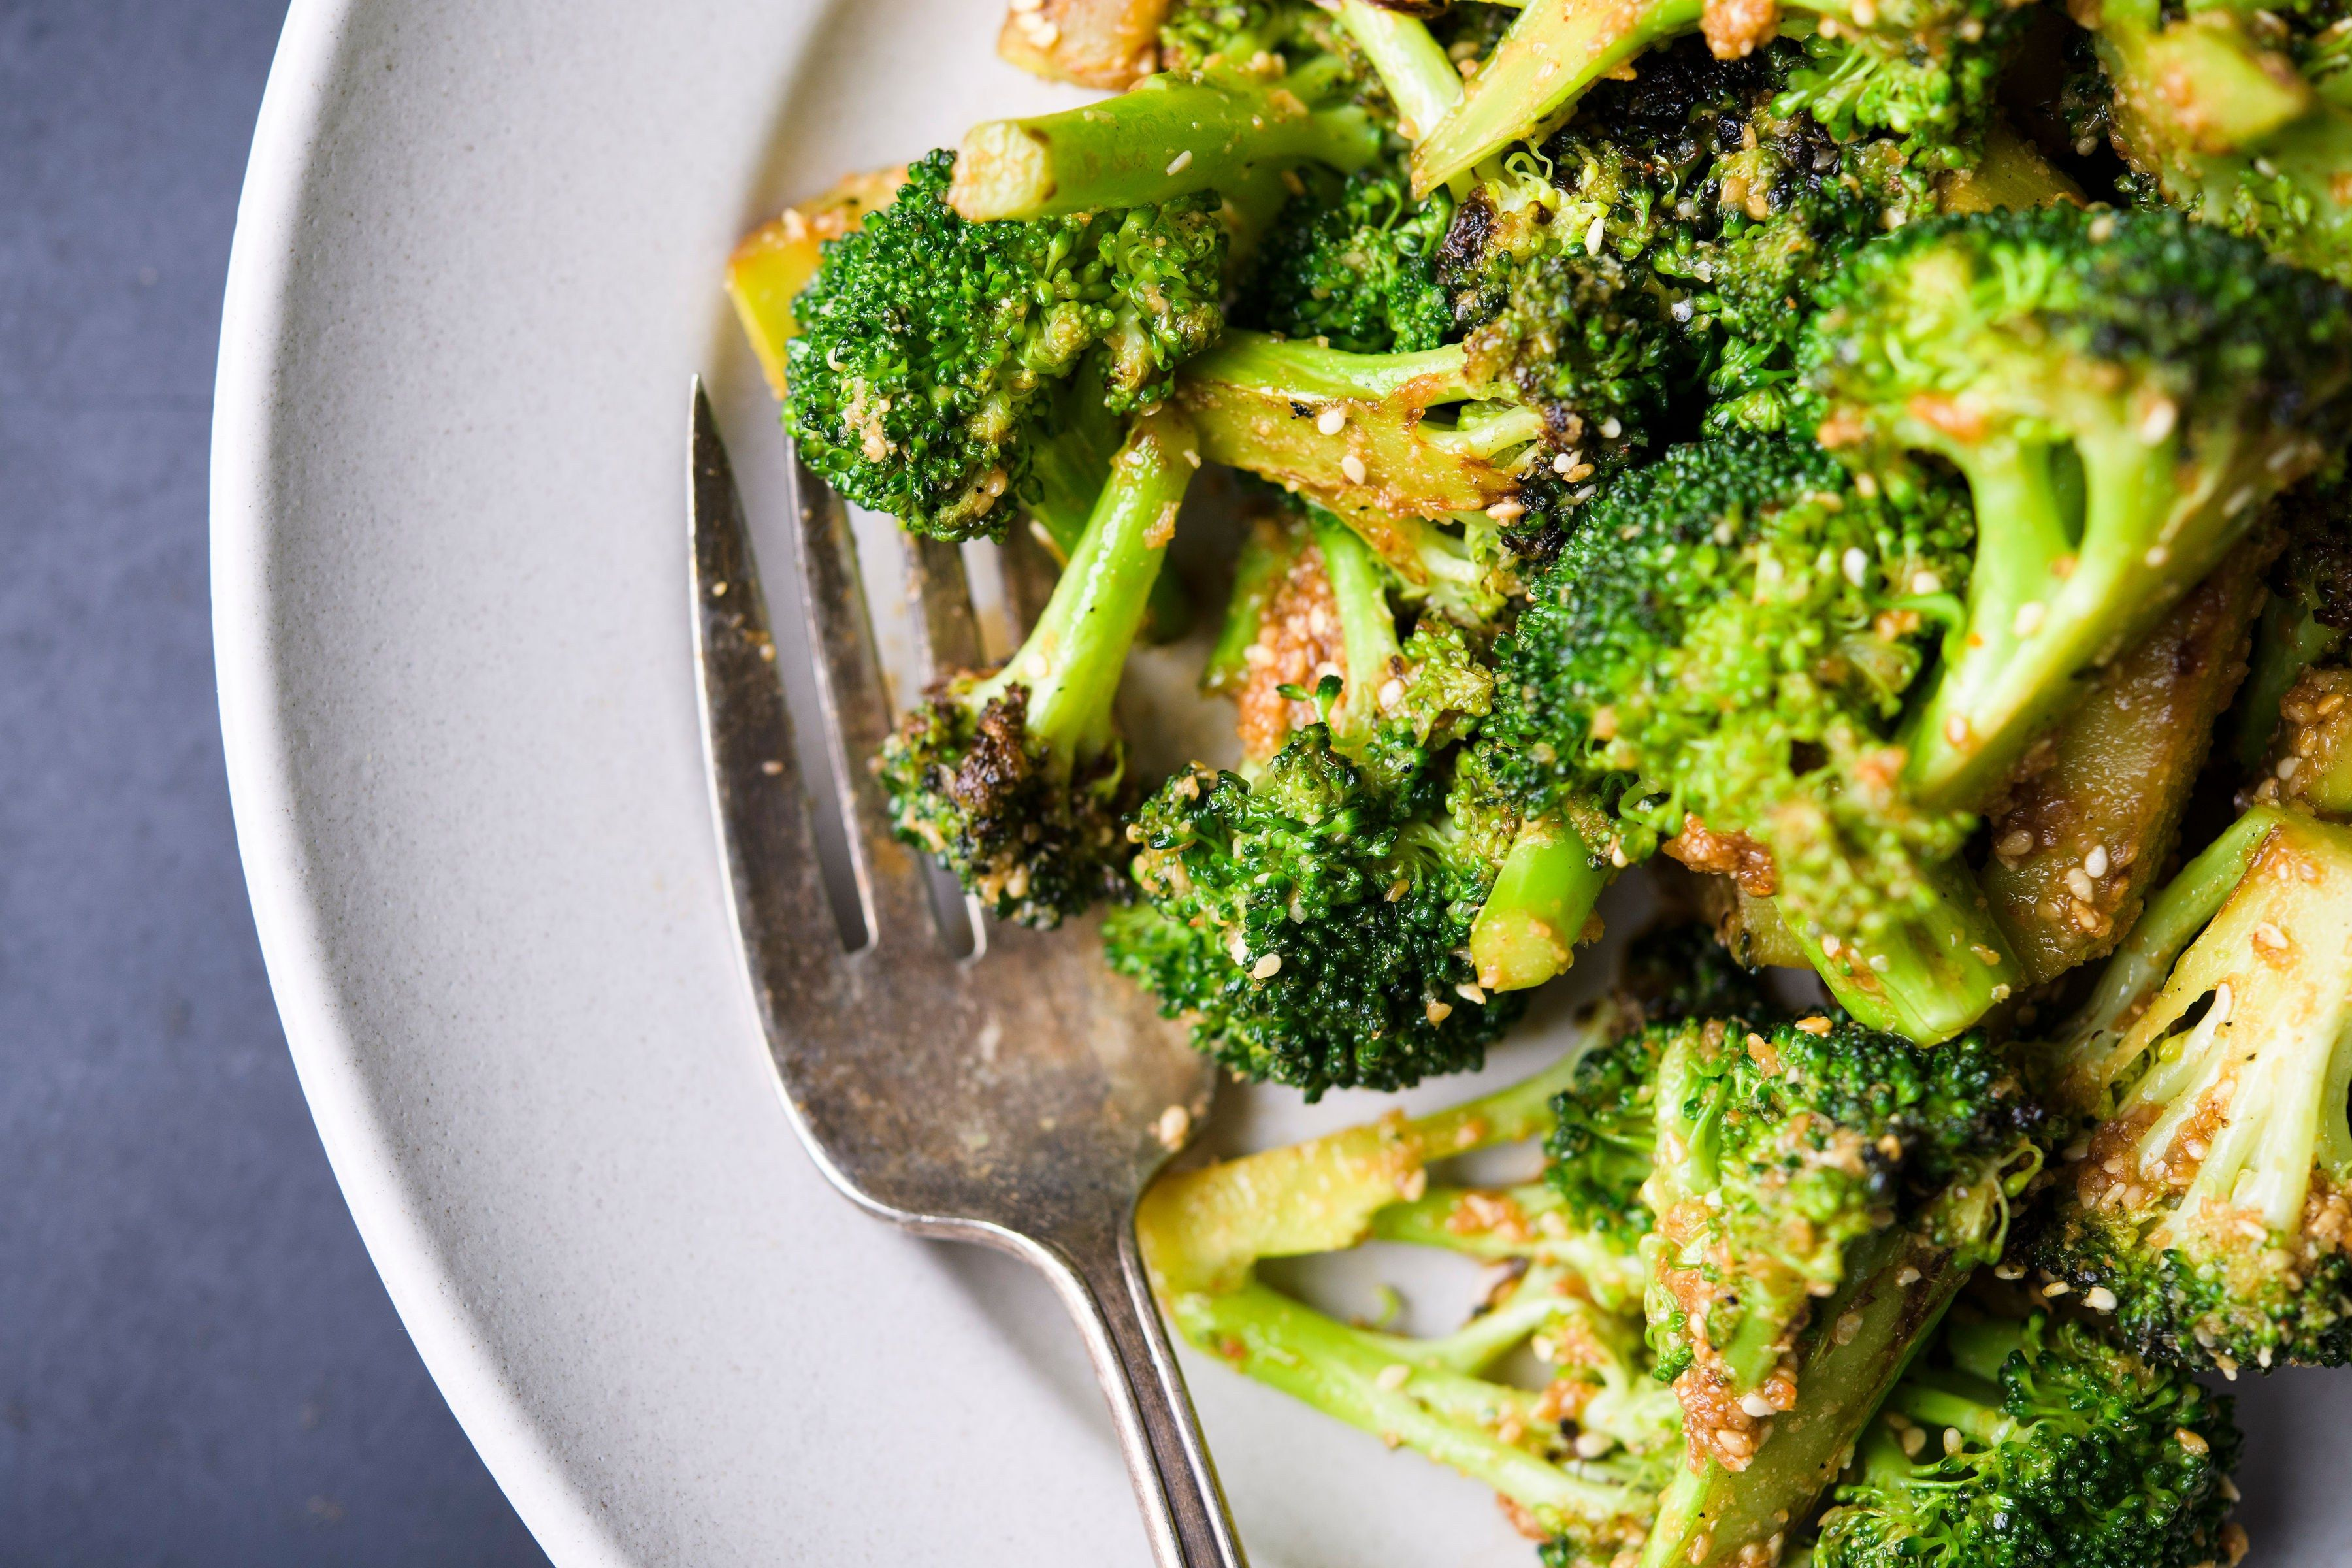 Charred Broccoli with Japanese-Style Toasted Sesame Sauce